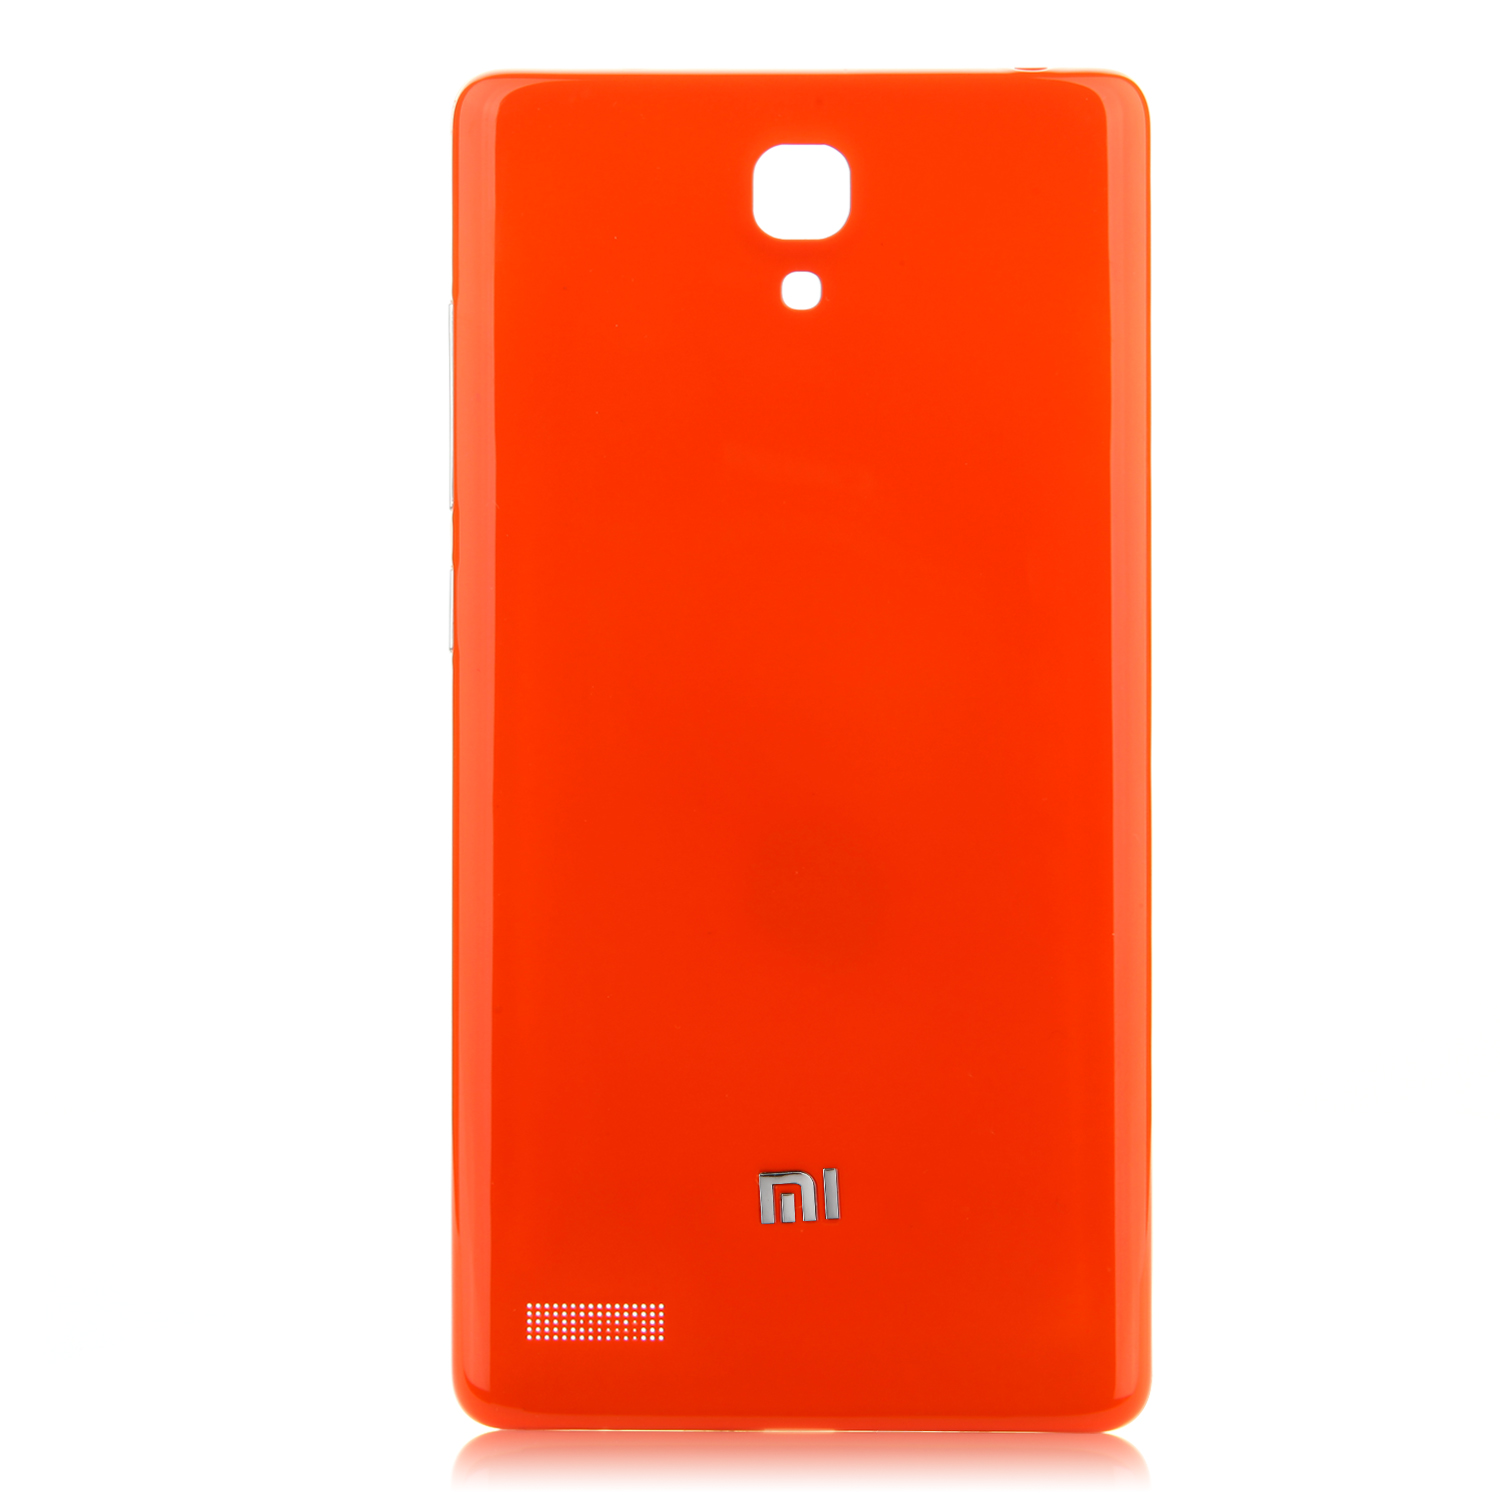 Battery Cover Back Case for XIAOMI Redmi Note Smartphone Orange